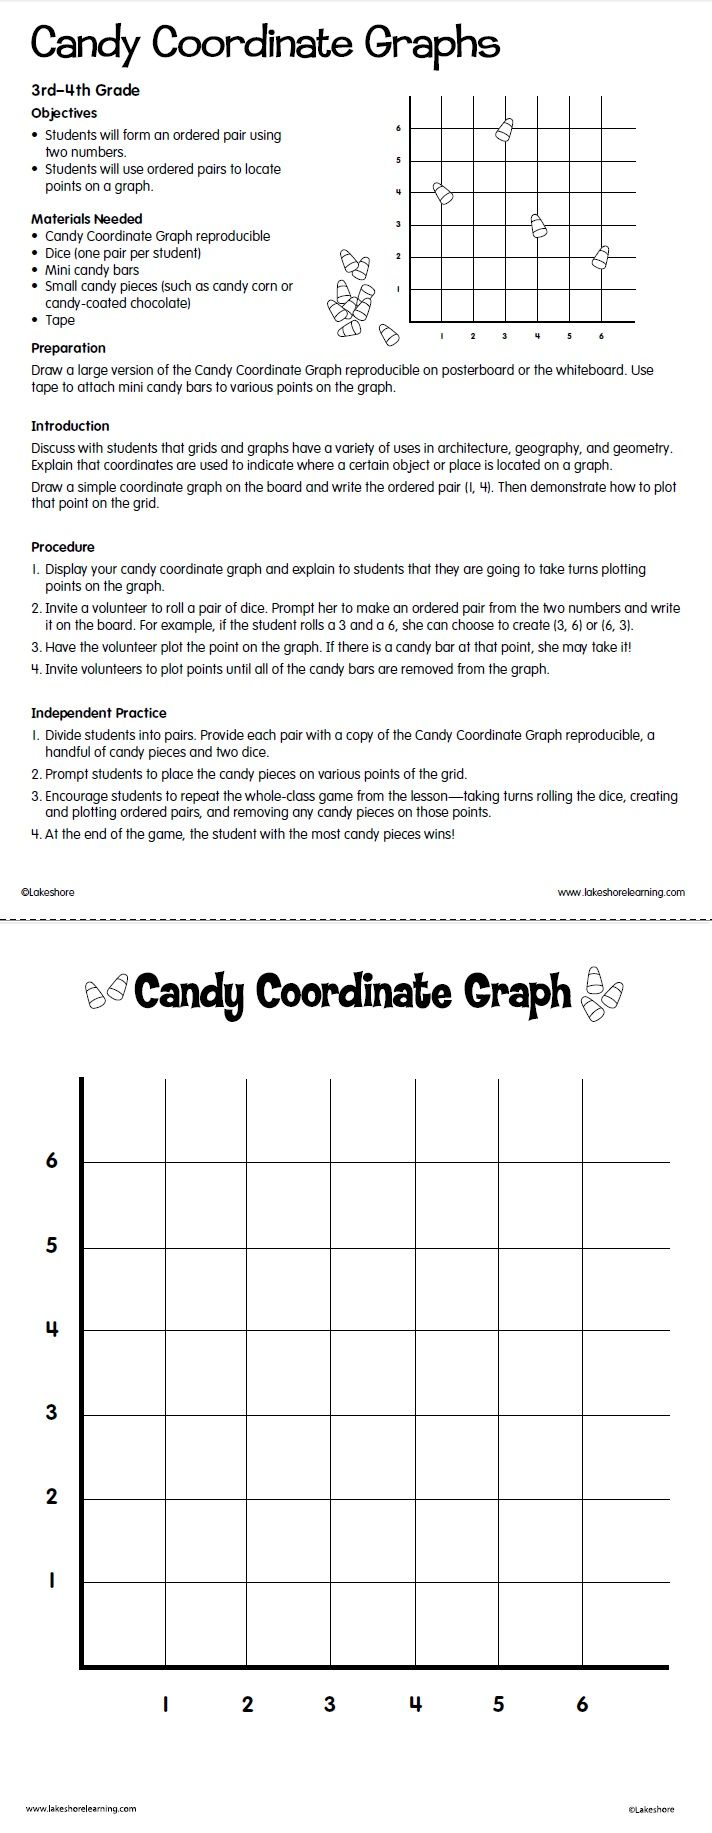 worksheet Coordinate Plane Graphing Activity coordinate graphing with smarties candies free planes pinterest candy